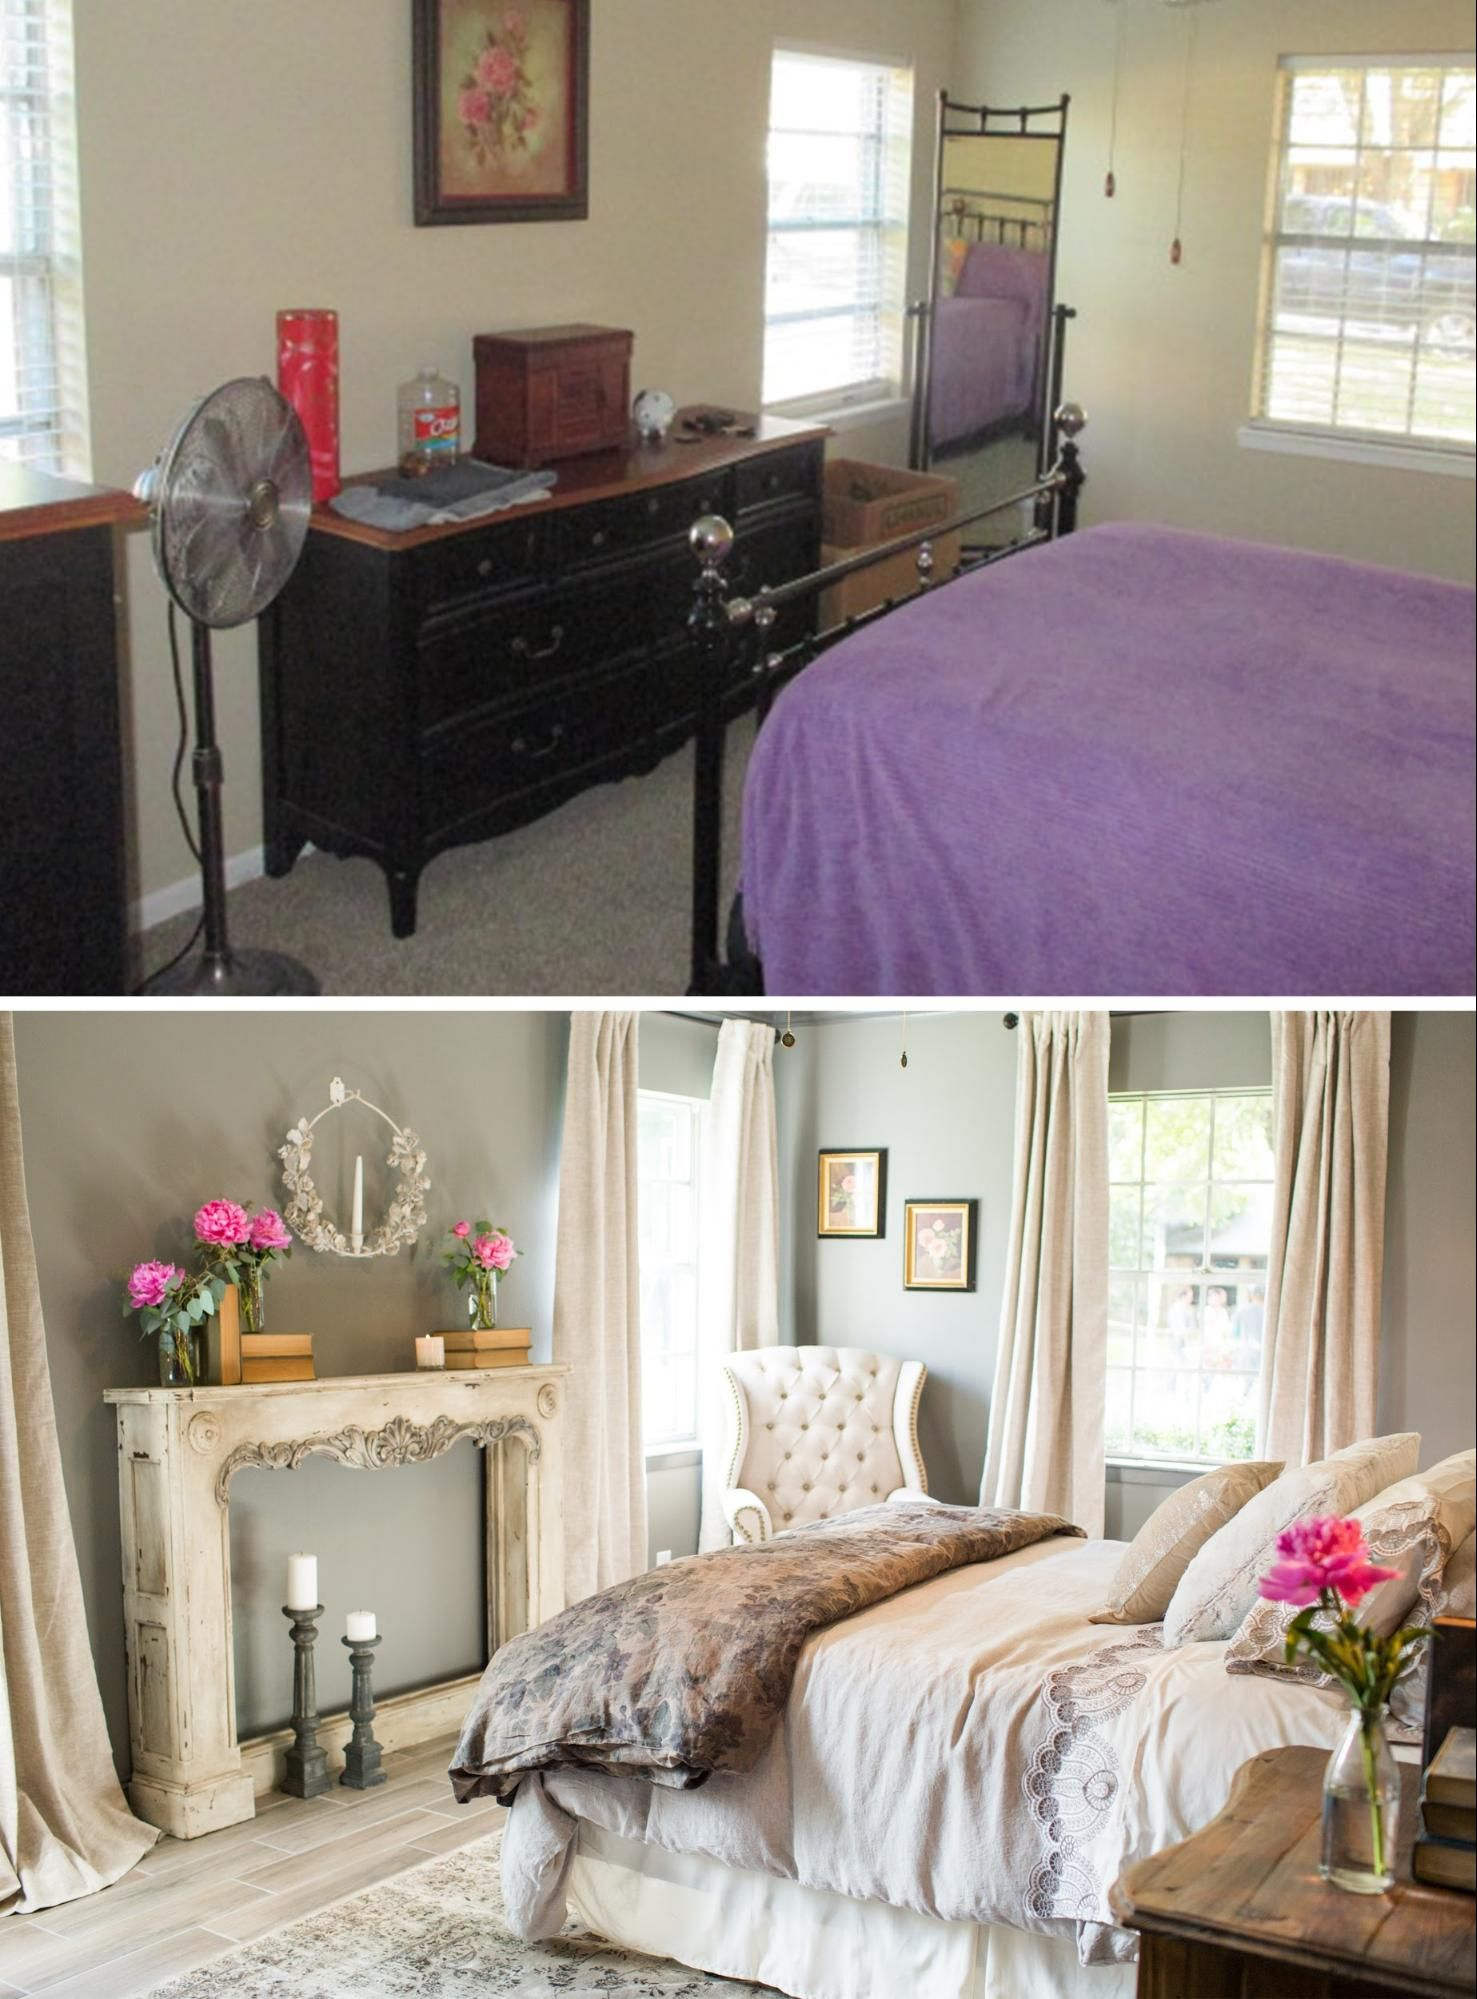 Show House Bedroom Fixer Upper The Schoolhouse Season 3 Episode 8 Master Bedroom